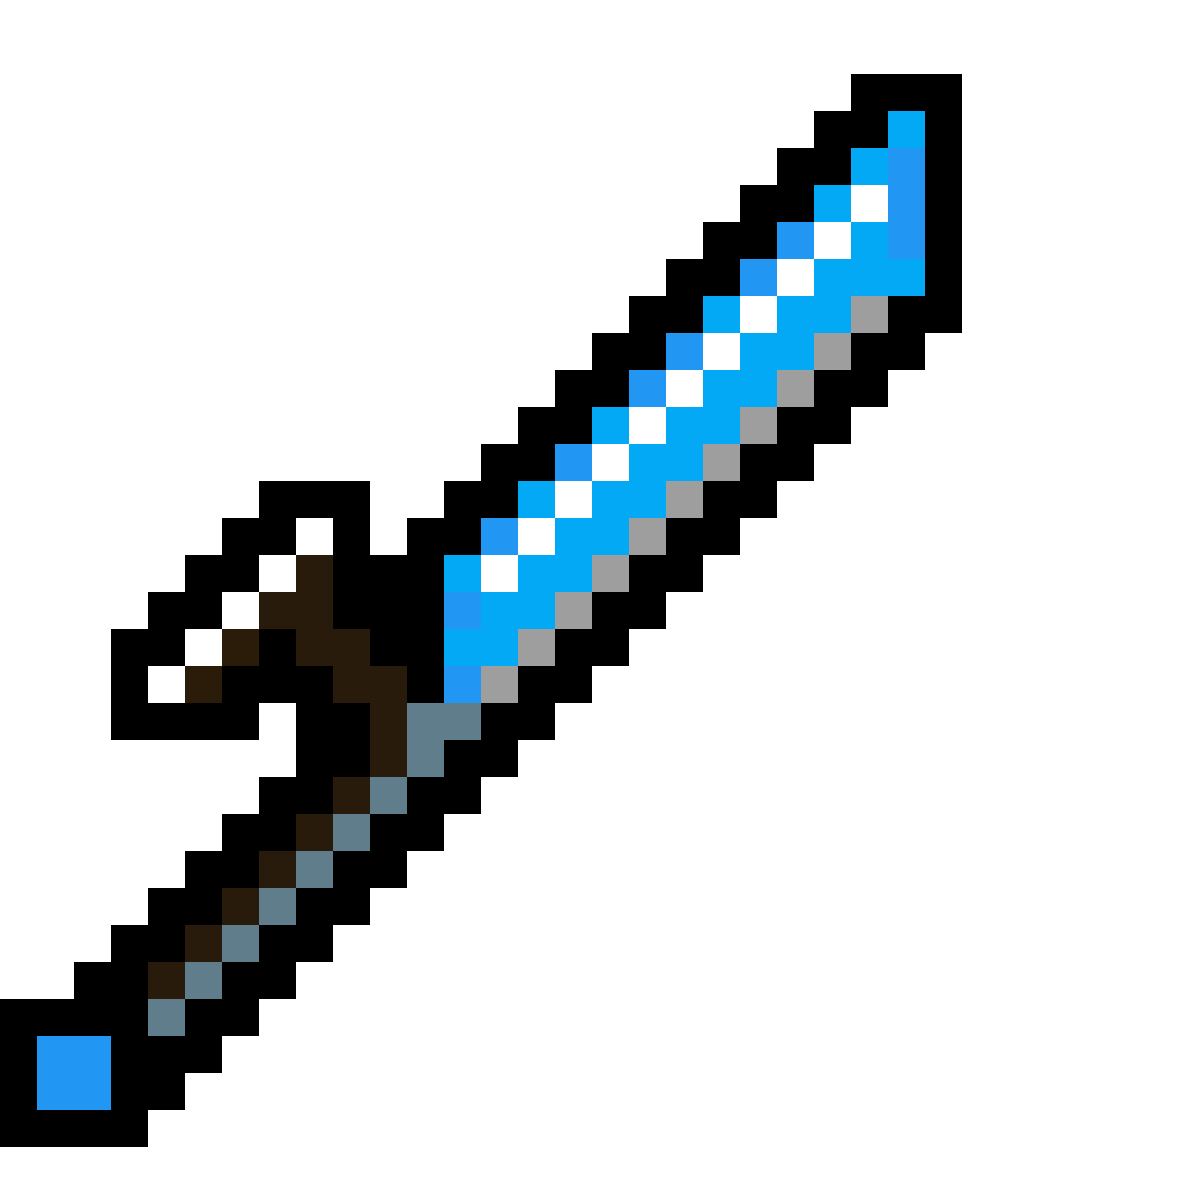 how to get a diamond sword in minecraft